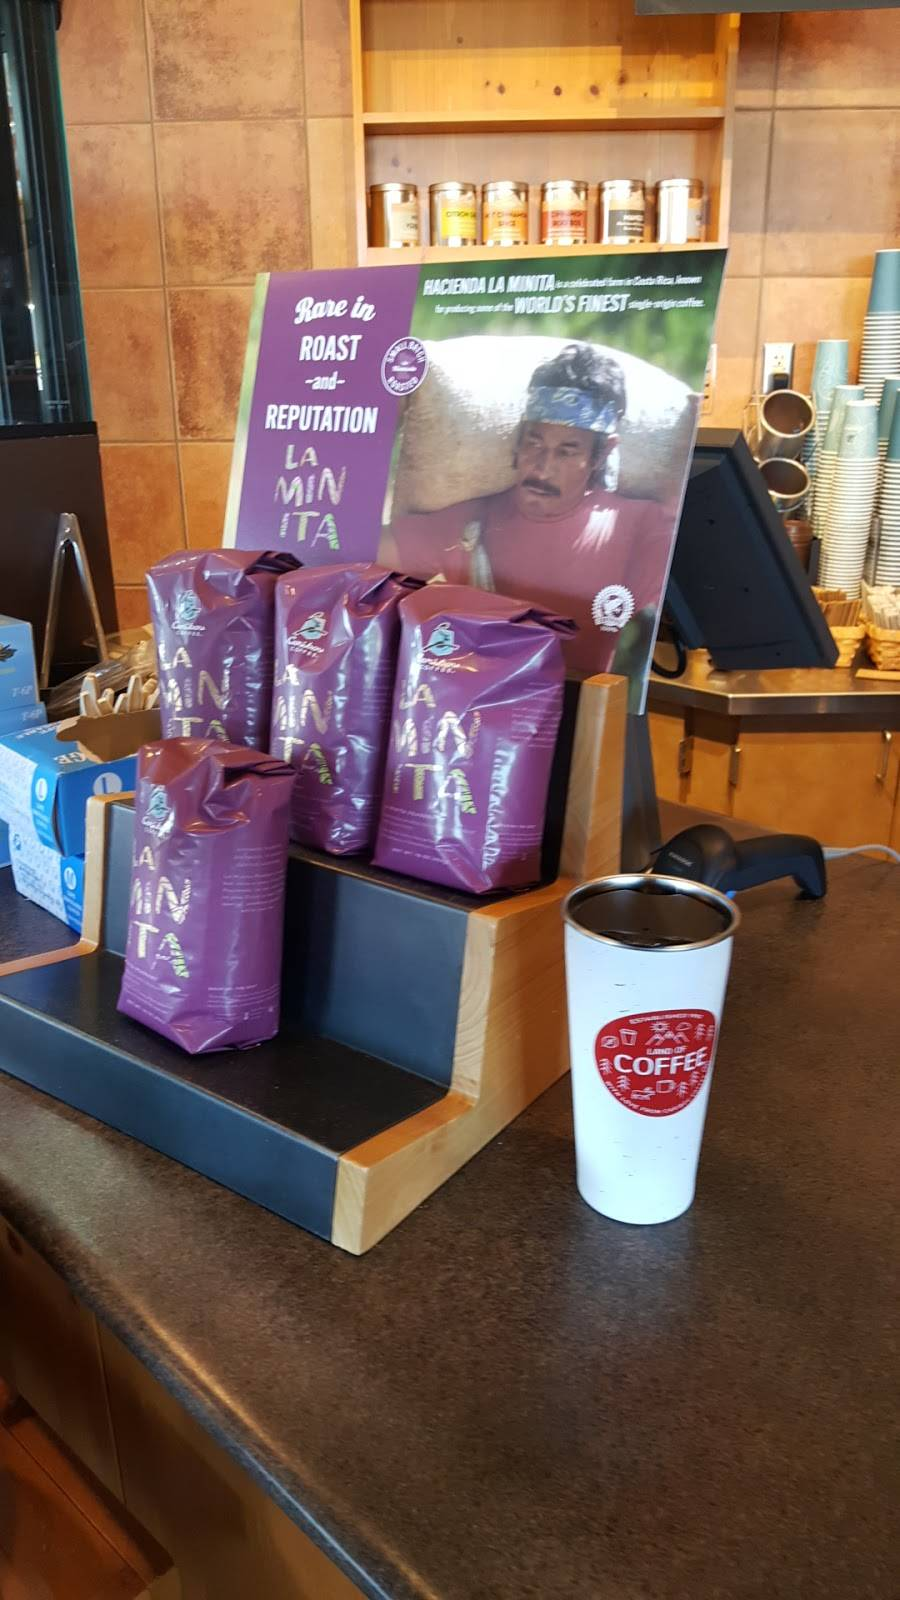 Caribou Coffee | cafe | 351 Willow Bend, Crystal, MN 55428, USA | 7635374844 OR +1 763-537-4844